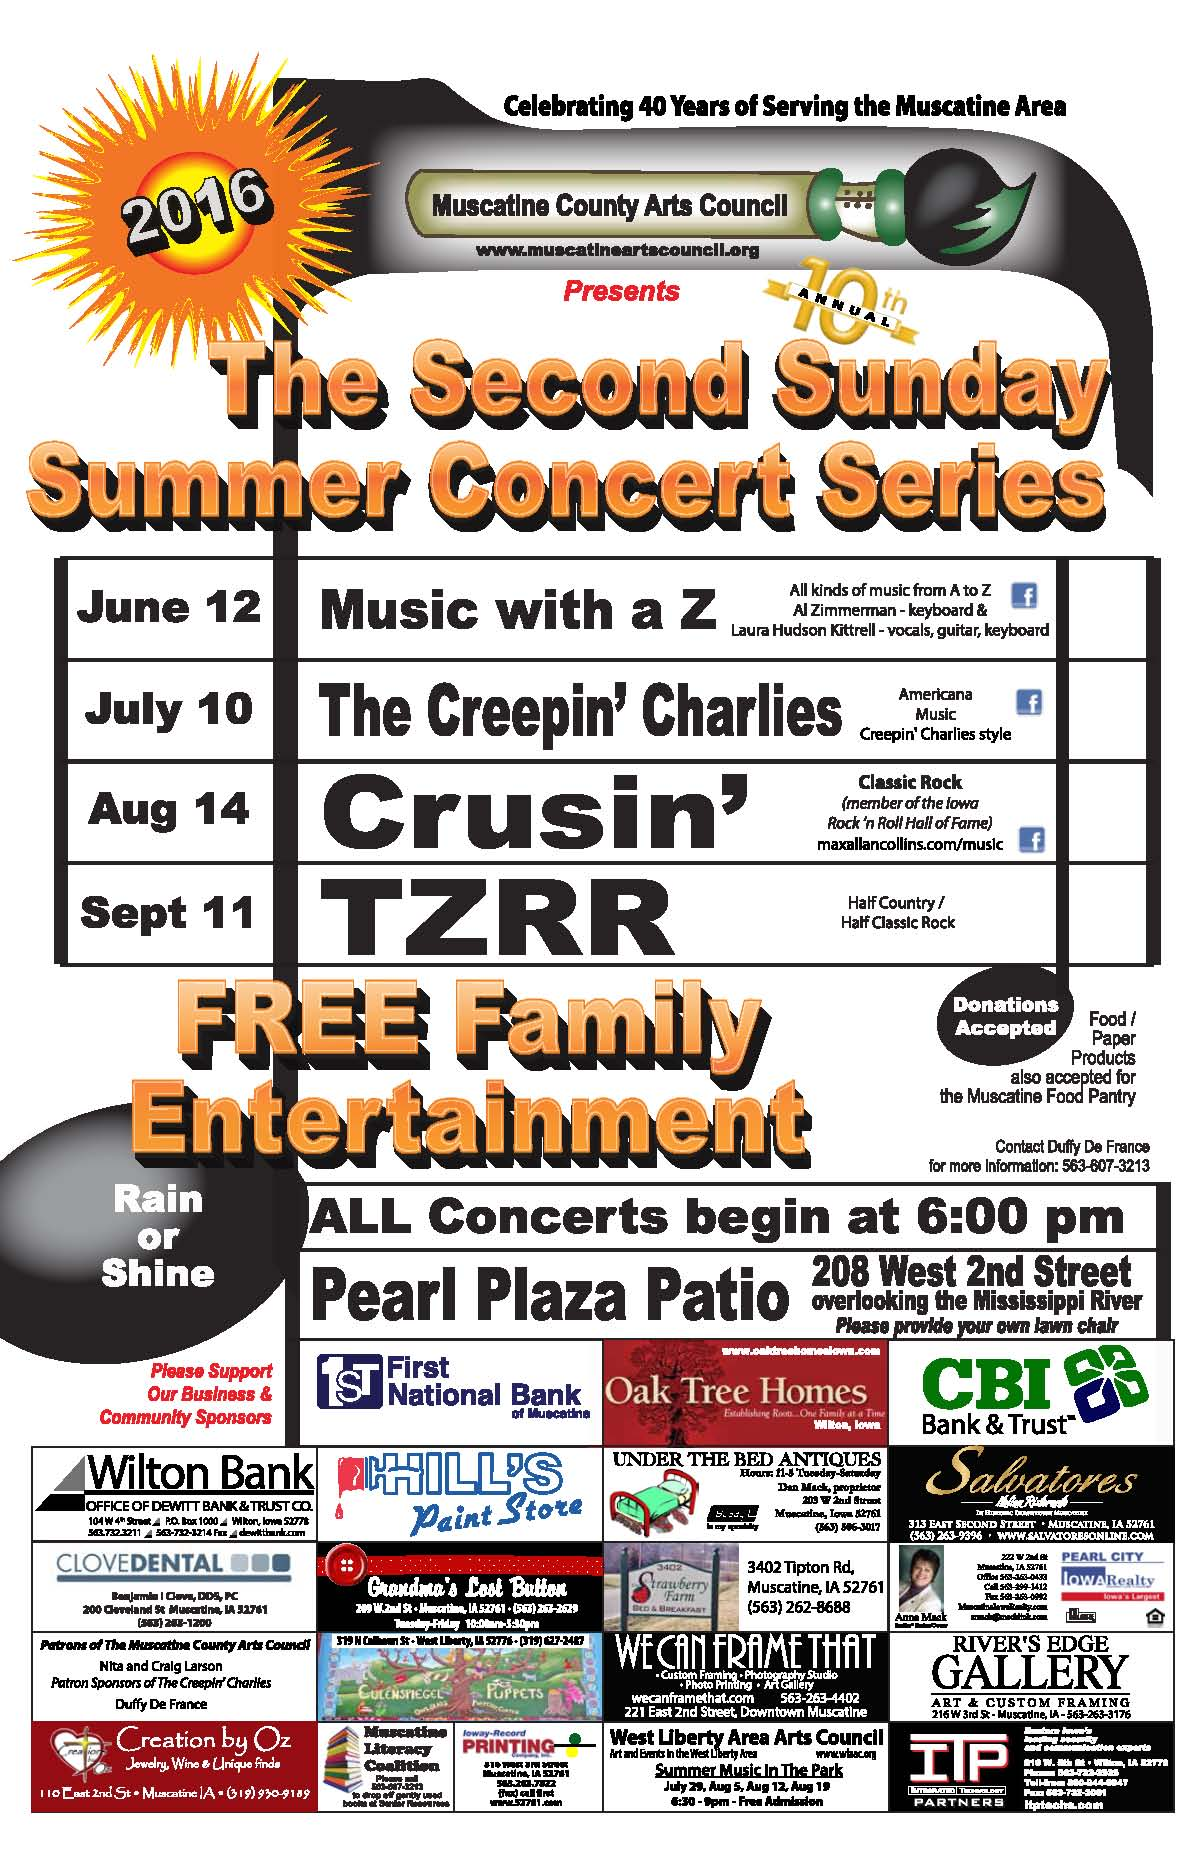 Second Sunday Concert Series @ Pearl Plaza Patio | Muscatine | Iowa | United States